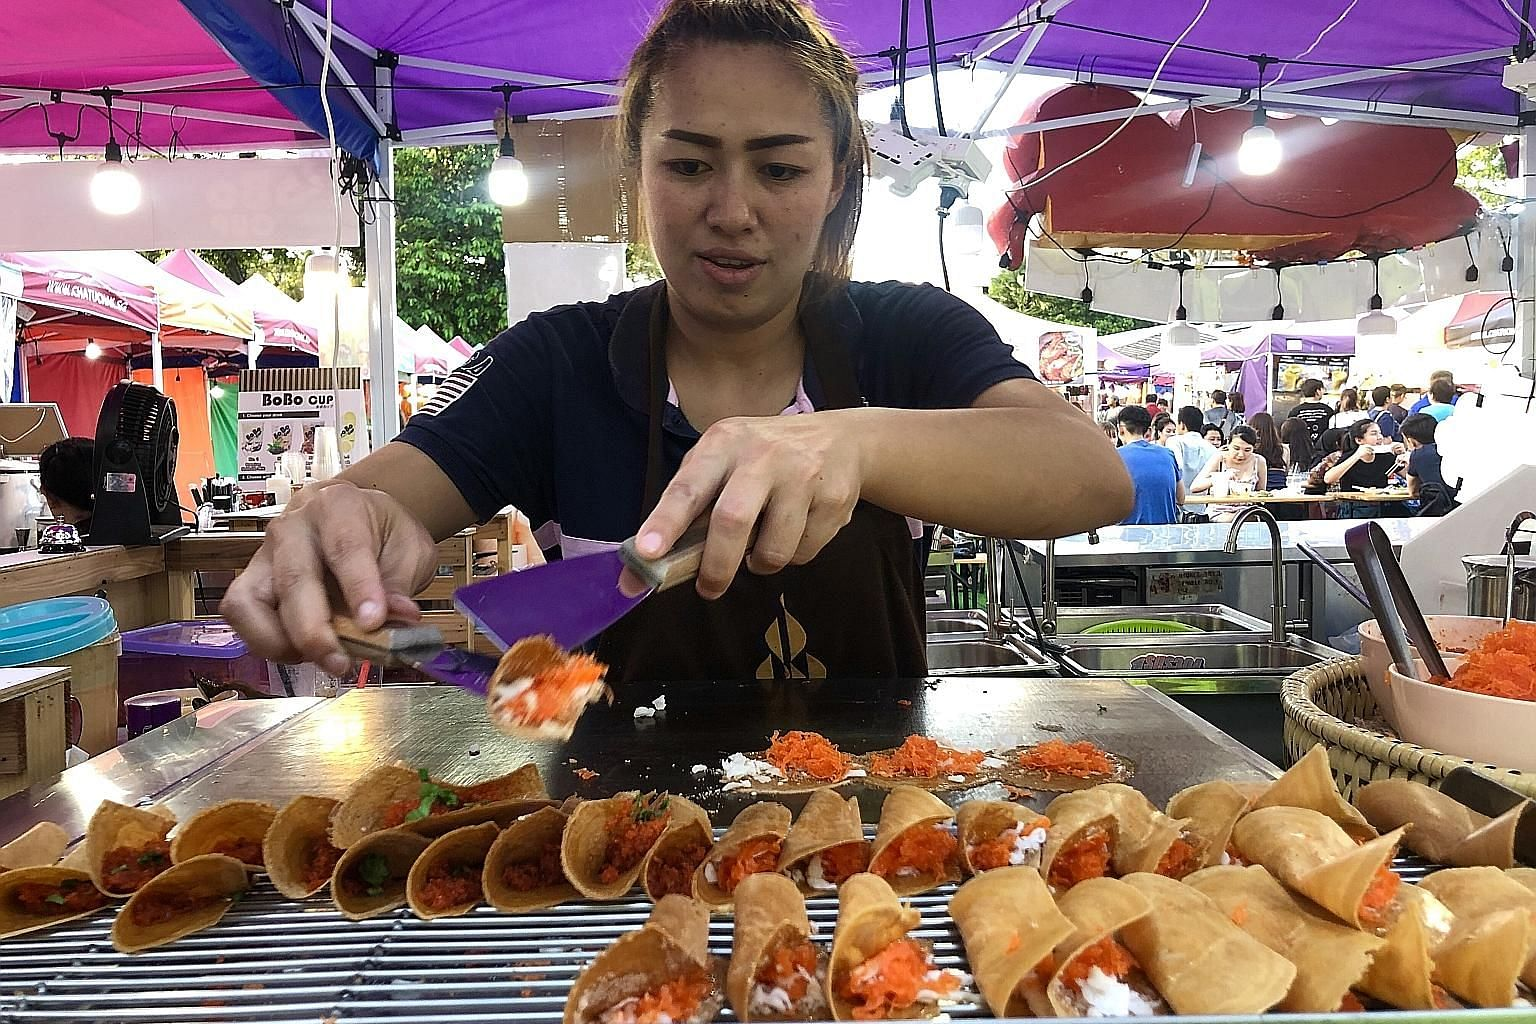 Ms Kik Pornpimon, 29, flew in from Bangkok to make and sell Thai crispy pancakes at Chatuchak Night Market Singapore, which kicked off on Feb 4 and is open until May 3. The night market features 200 stalls, half of which sell food and drinks.